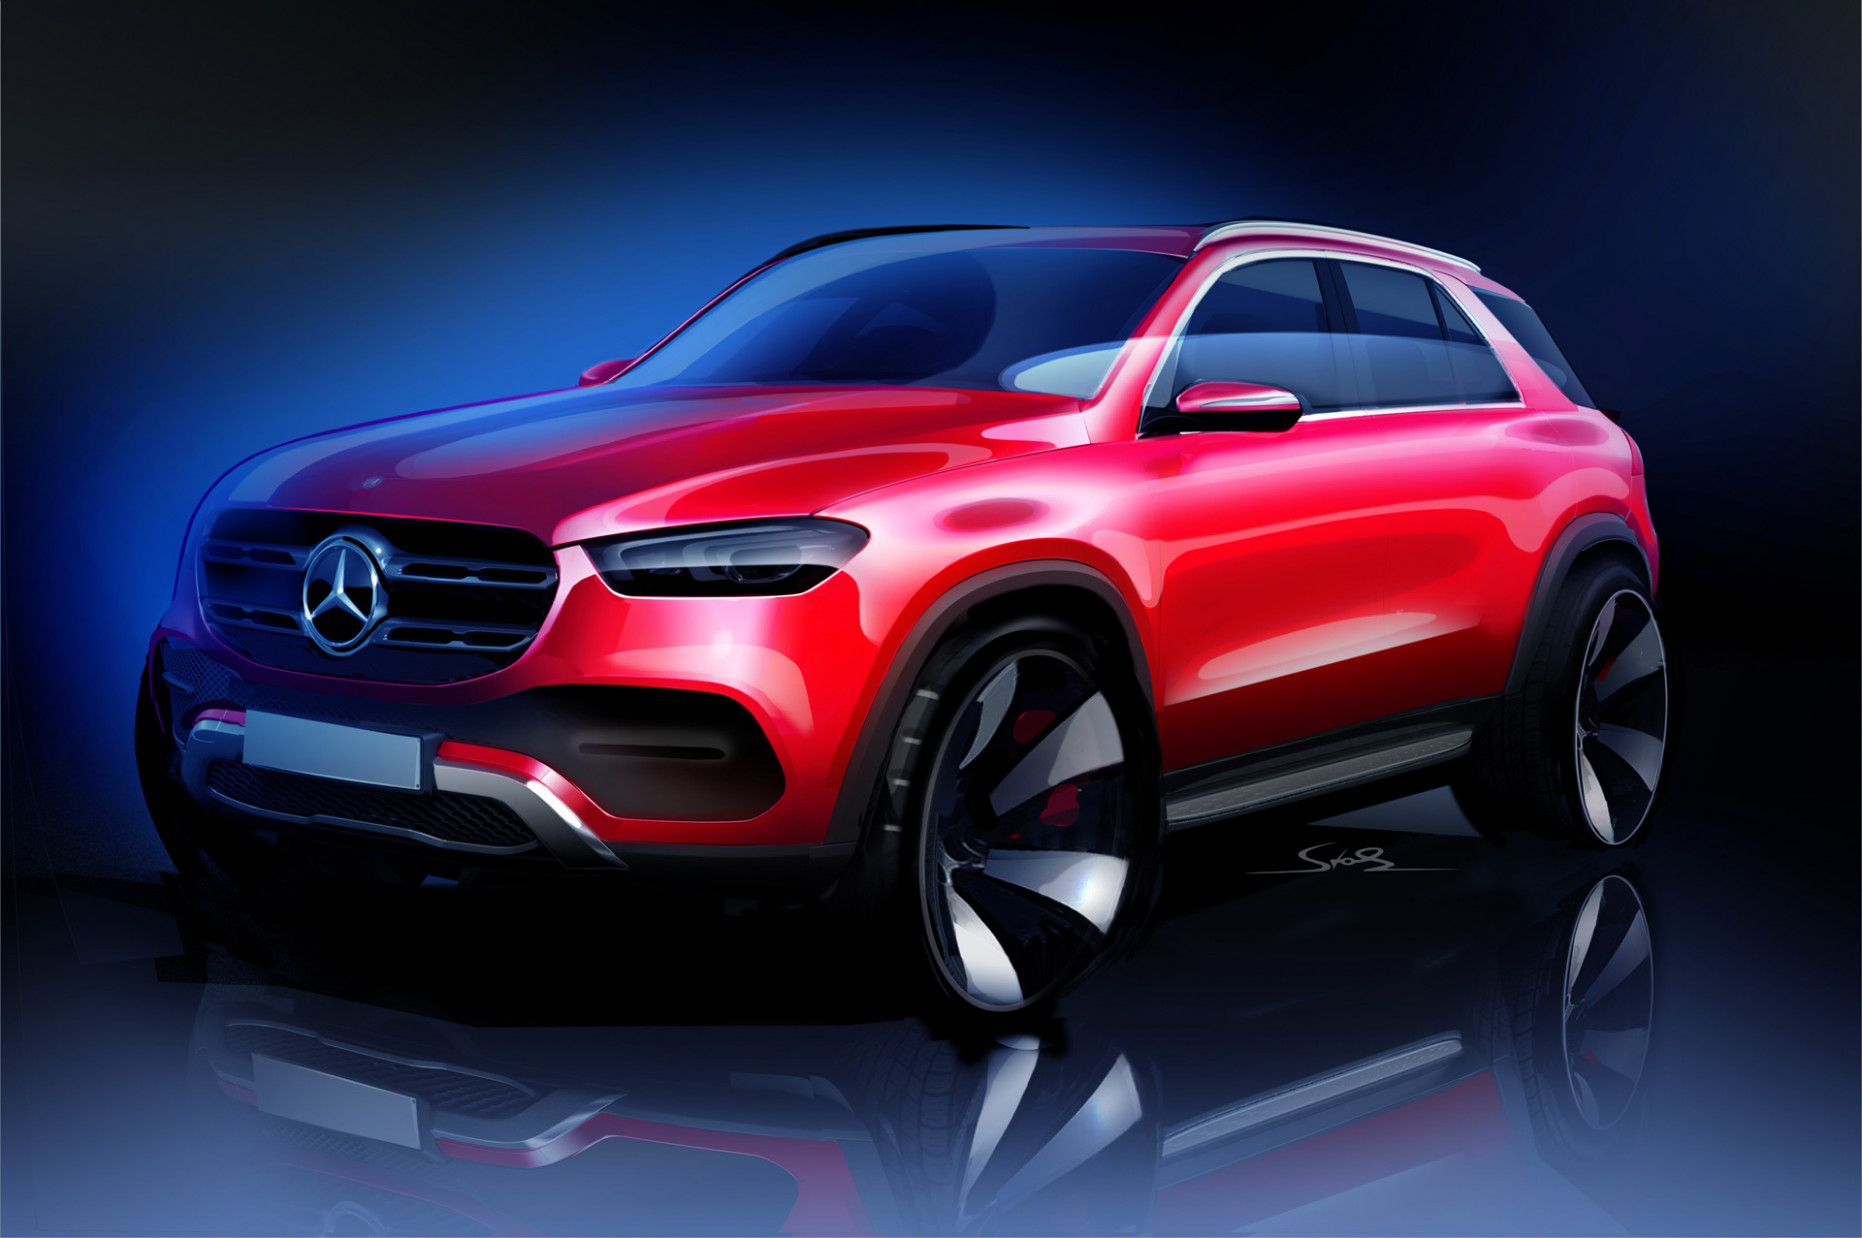 Mercedes-Benz teases 12 GLE luxury SUV